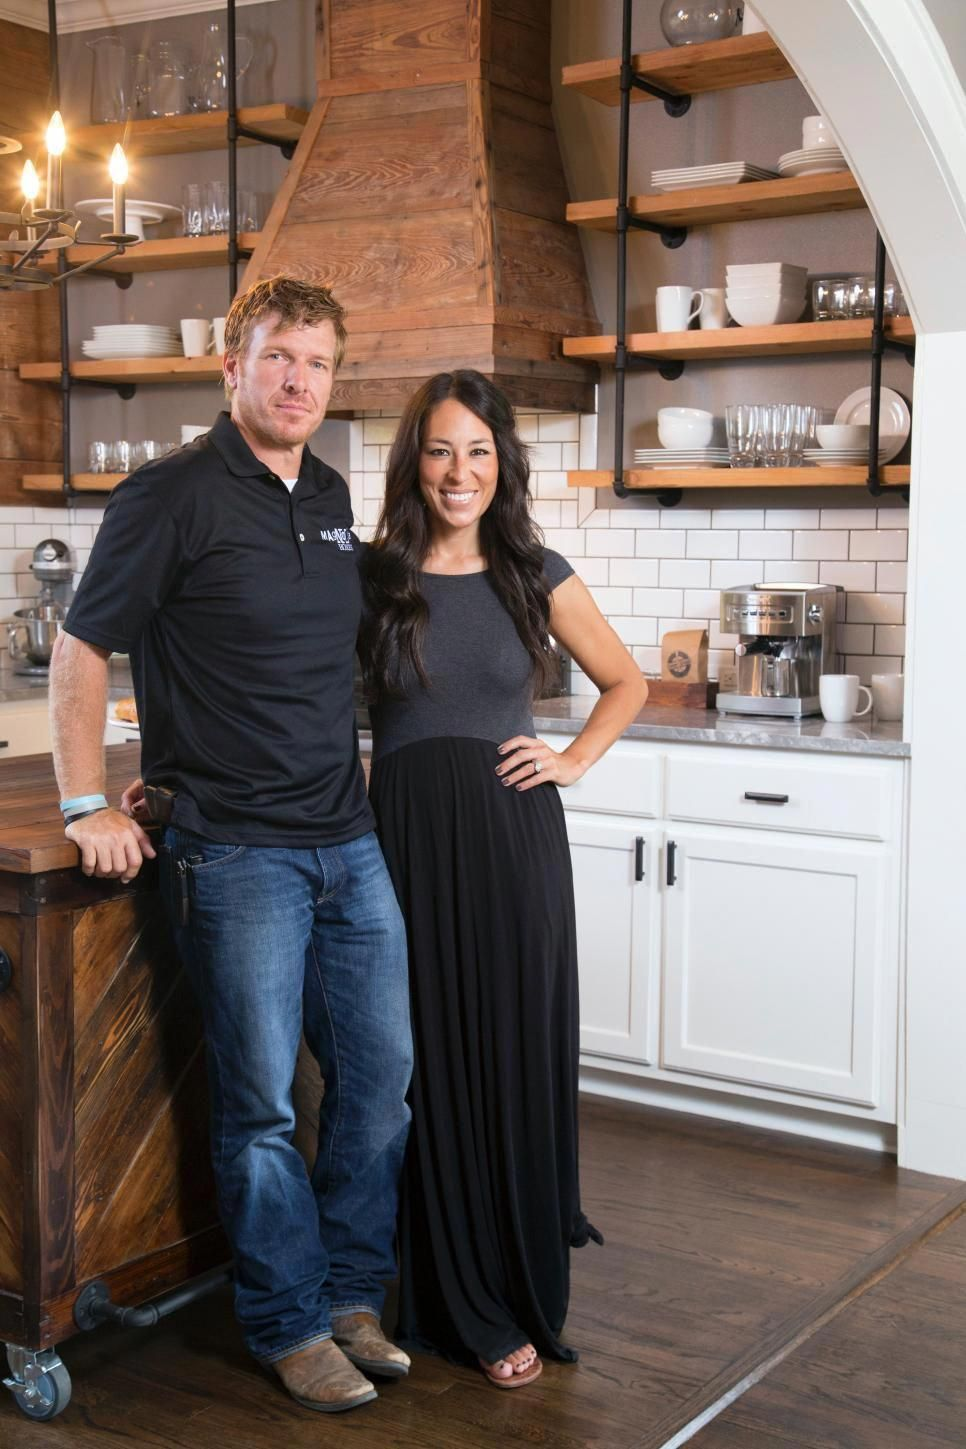 If you love Chip and Joanna Gaines as much as we do, seeing glimpses of their stunning farmhouse on HGTV's Fixer Upper, has most likely left you wanting more. Their 1,700-square-foot Victorian home sits on 40 beautiful acres in Crawford, Texas, a suburb of Waco. When the couple isn't busy transforming fixer uppers for clients or working on exciting new projects for their business, this is the haven they call their own. #farmhousekitchen #chipandjoannagainesfarmhouse